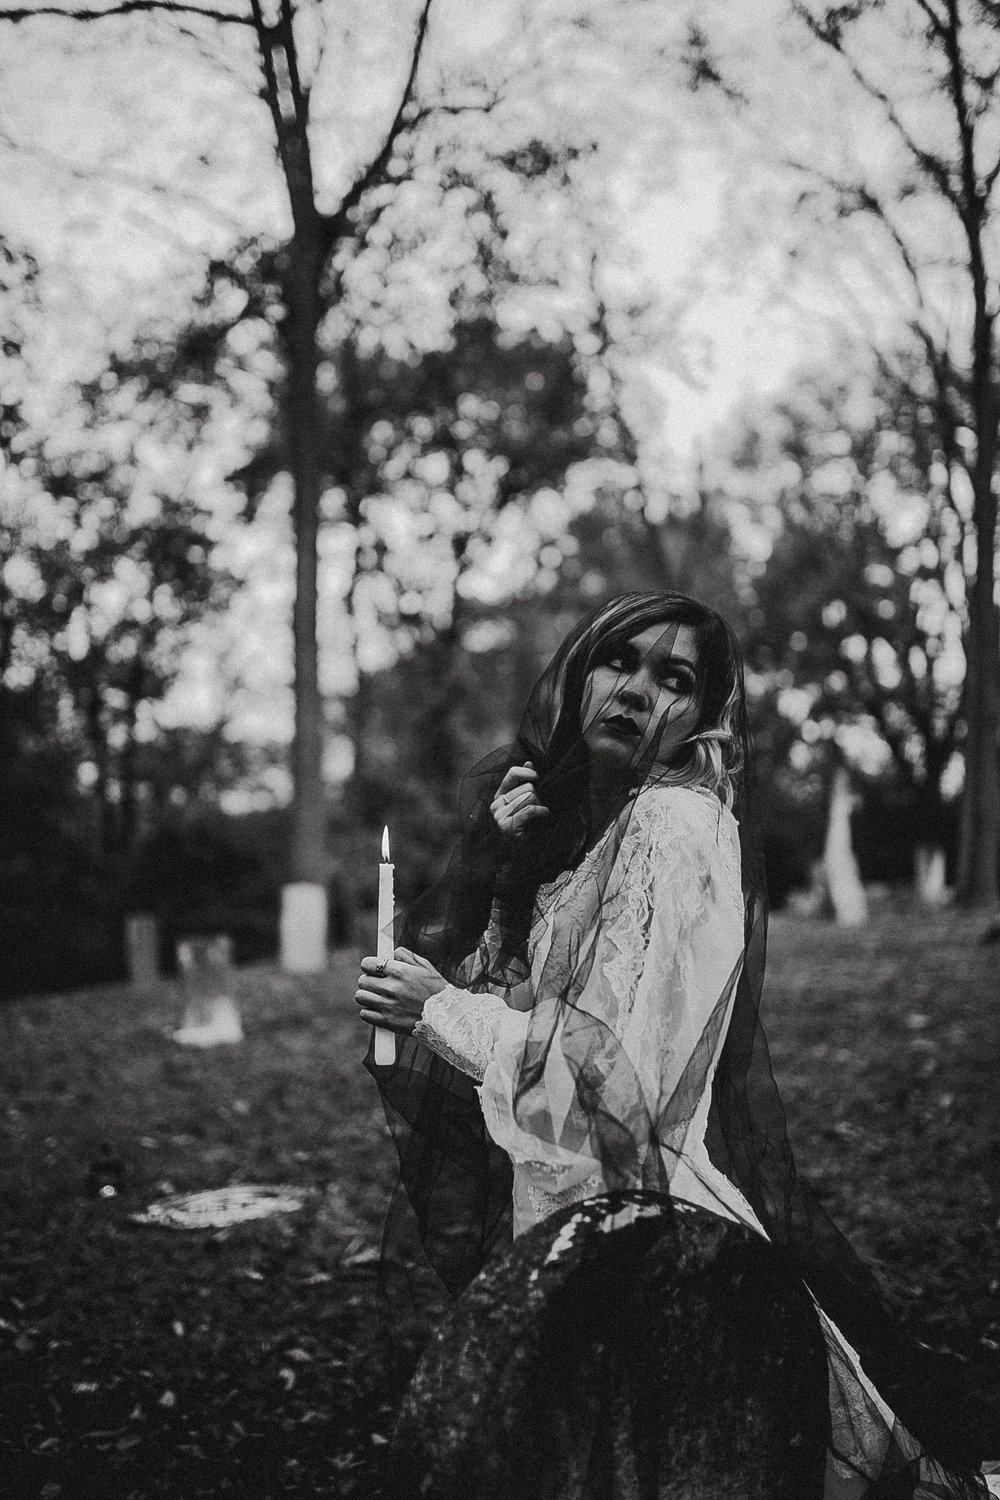 HALLOWEEN-REAGANLYNNPHOTOGRAPHY-INDIANAPOLIS-INDIANA-29.jpg